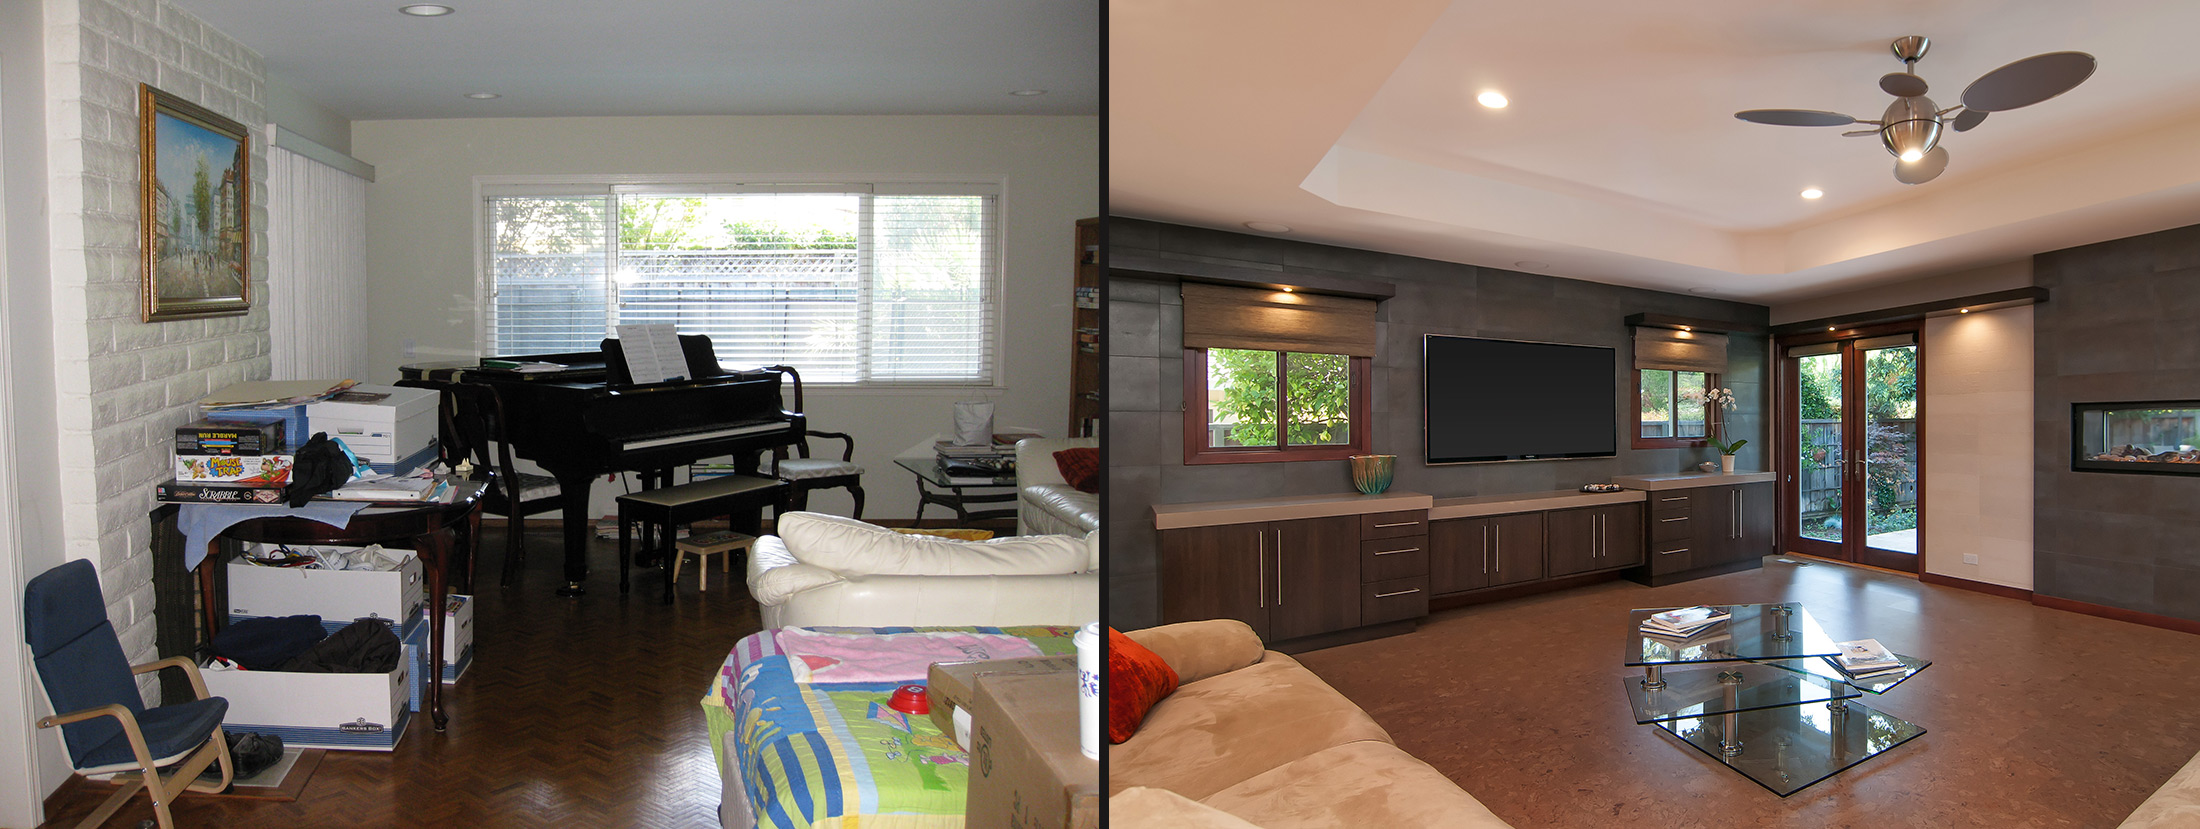 remodelwest | before after remodeling galleries saratoga